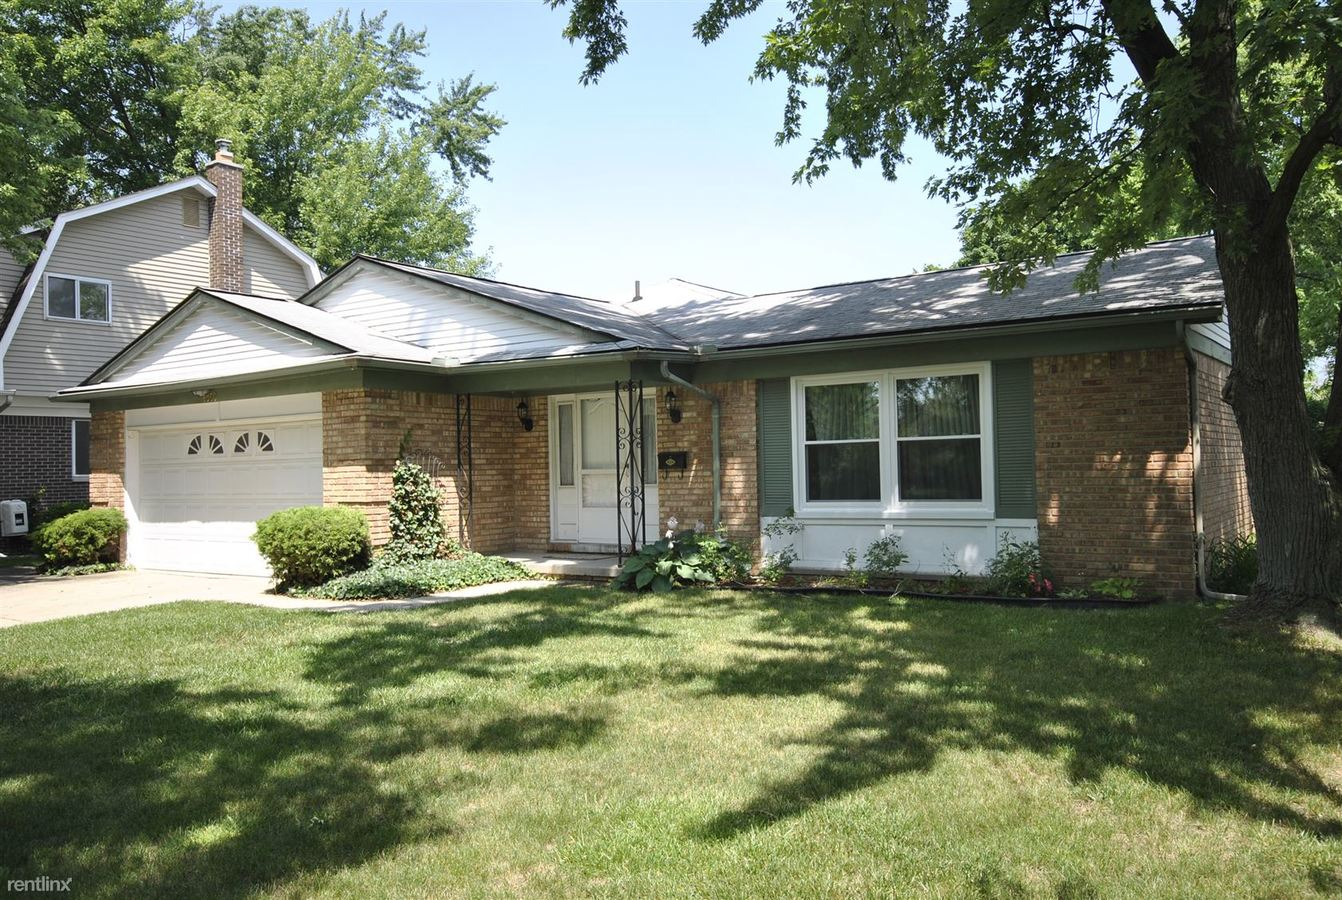 4 Bedrooms 2 Bathrooms House for rent at 2869 E Eisenhower Pkwy in Ann Arbor, MI